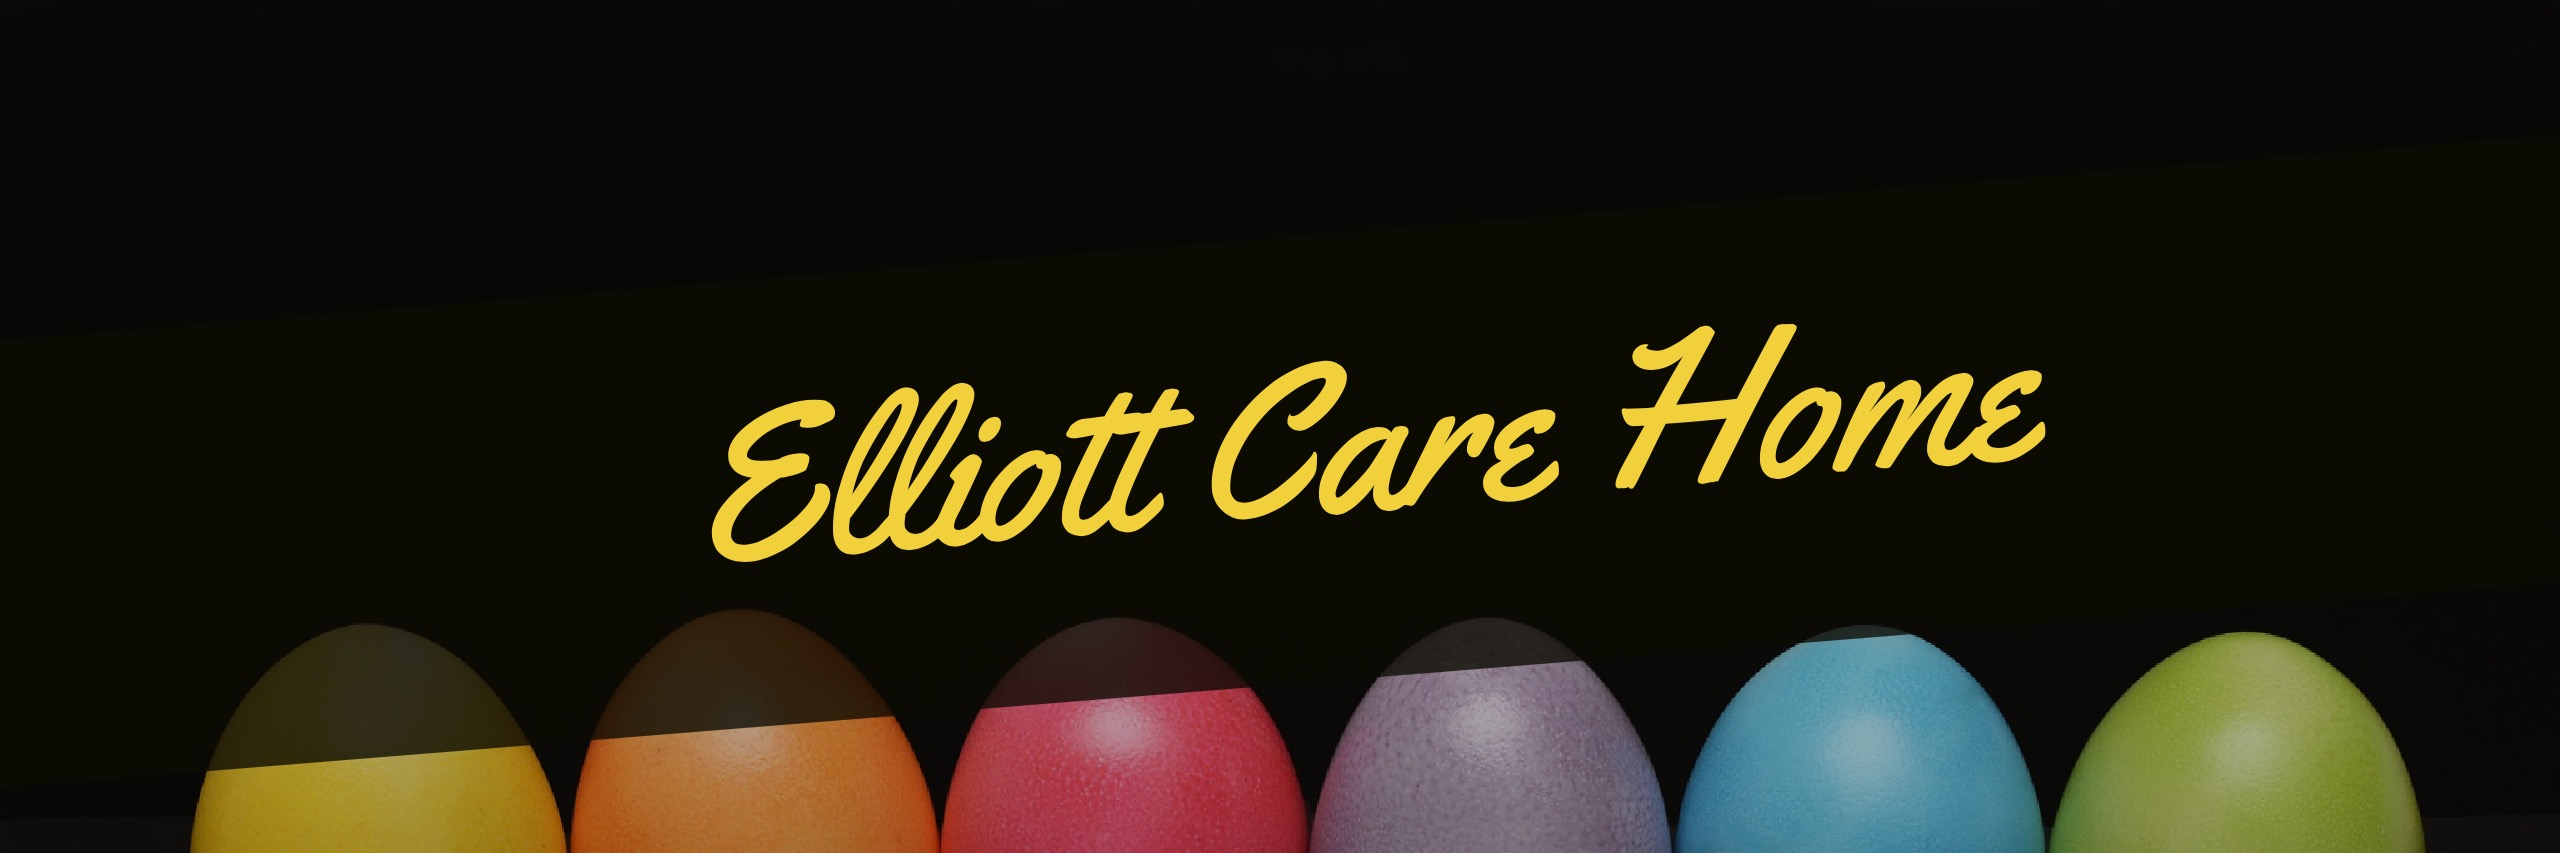 Elliott care home Leicester name you can trust